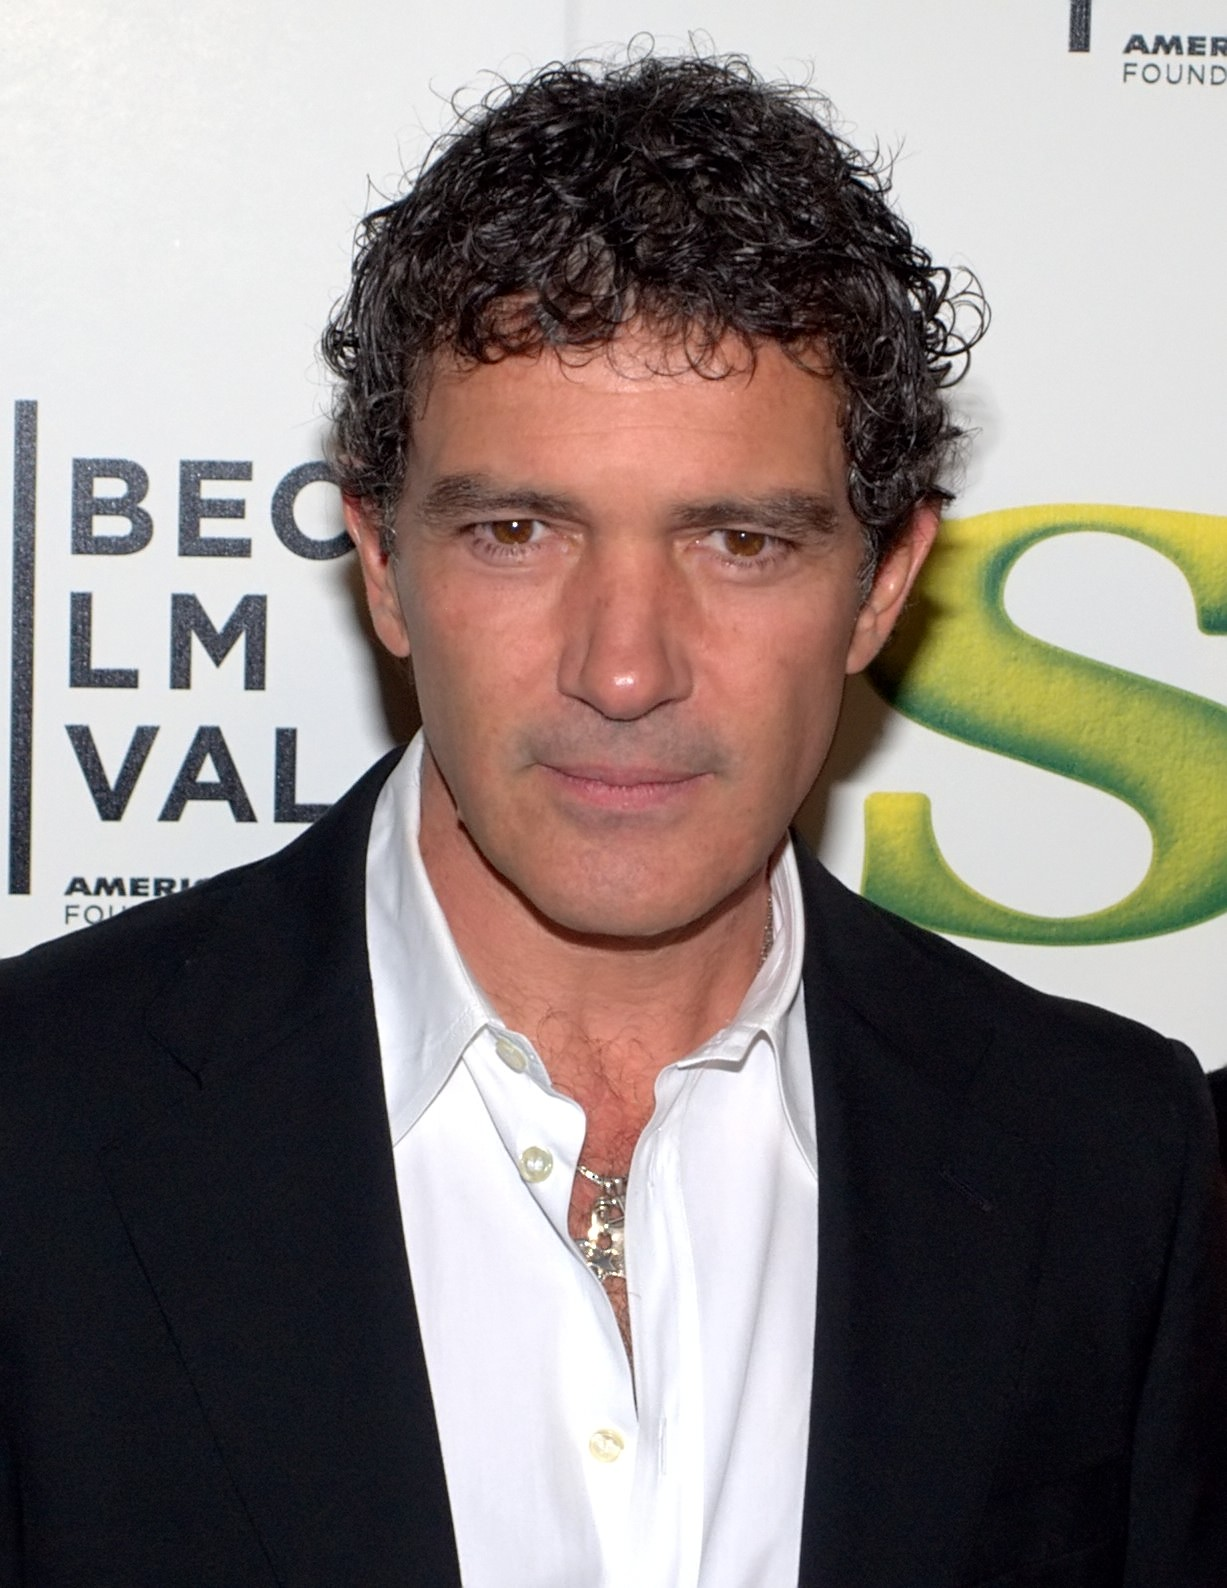 The 57-year old son of father José Domínguez  and mother Ana Banderas, 175 cm tall Antonio Banderas in 2018 photo